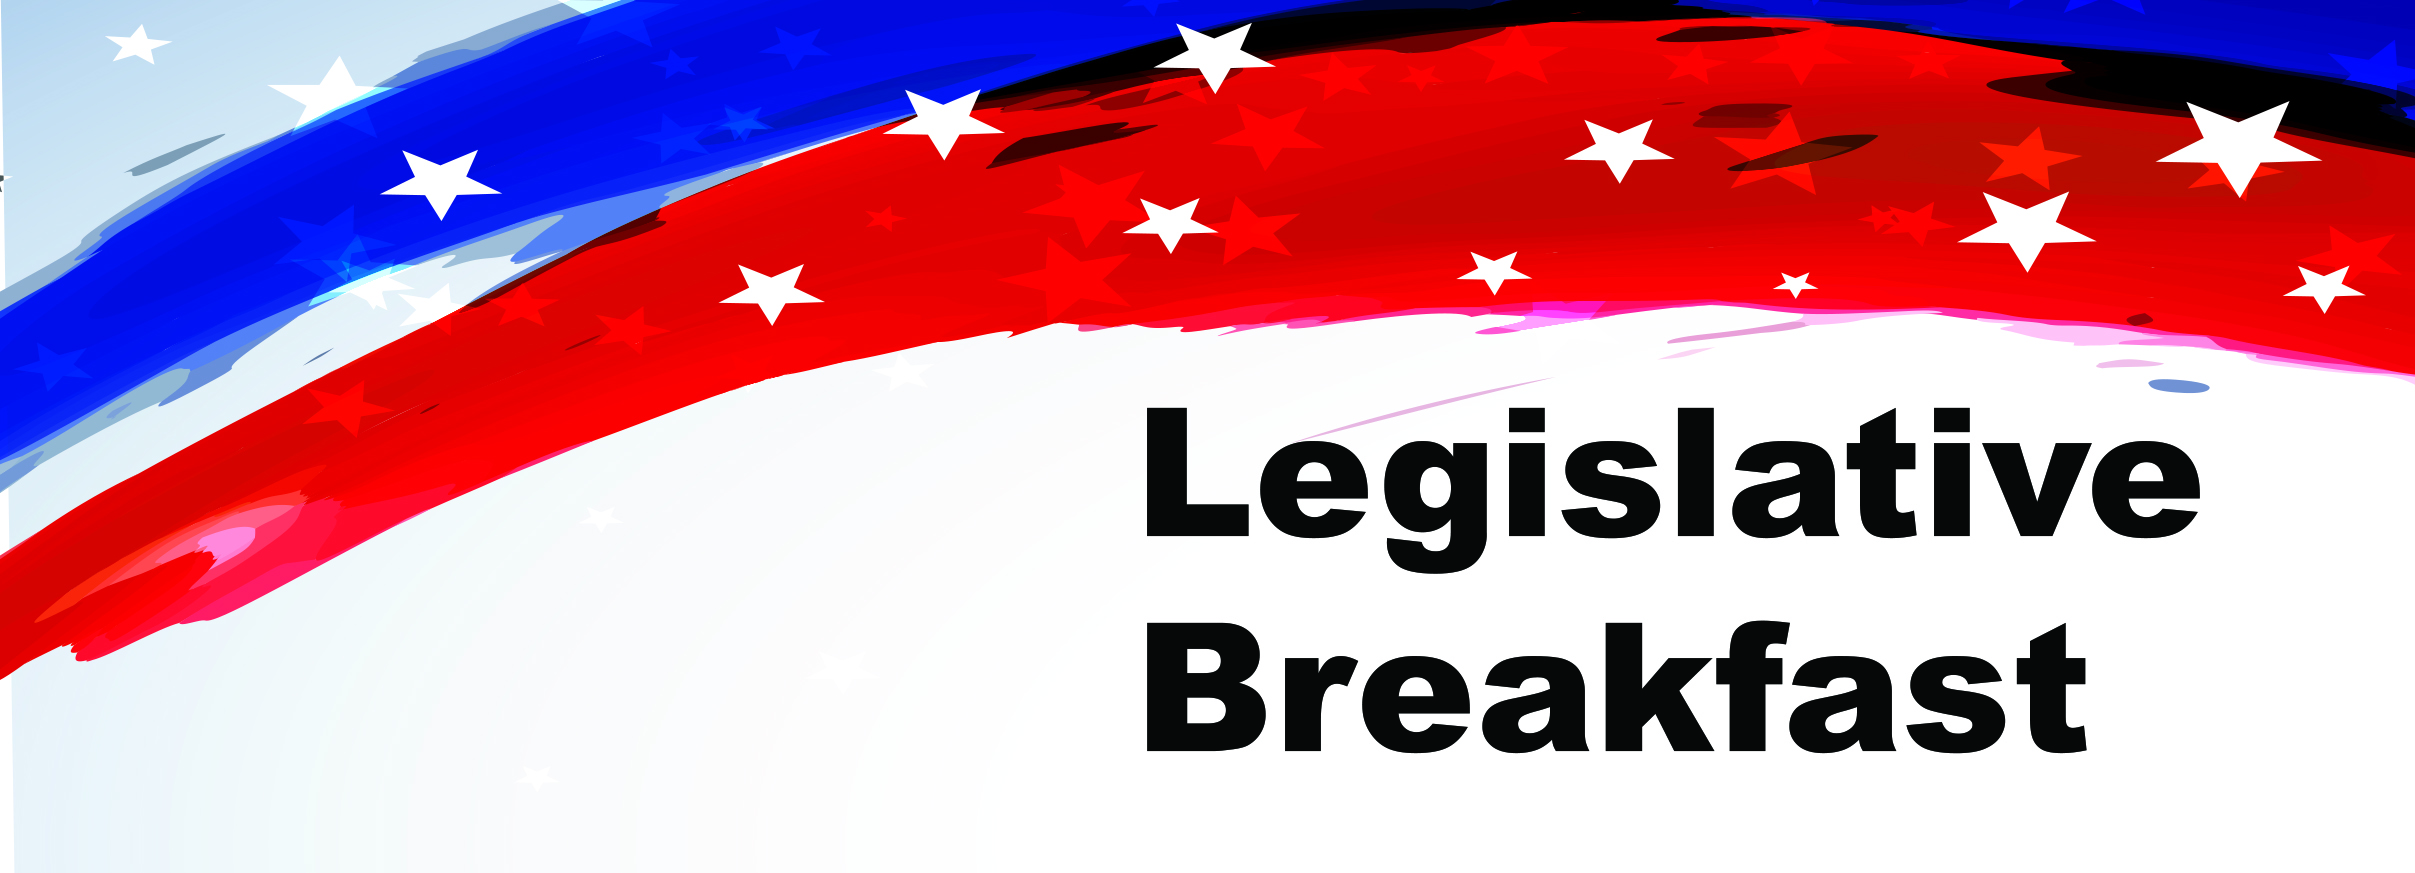 "blue and red brush across top with white stars. Black text reads, ""Legislative Breakfast."""